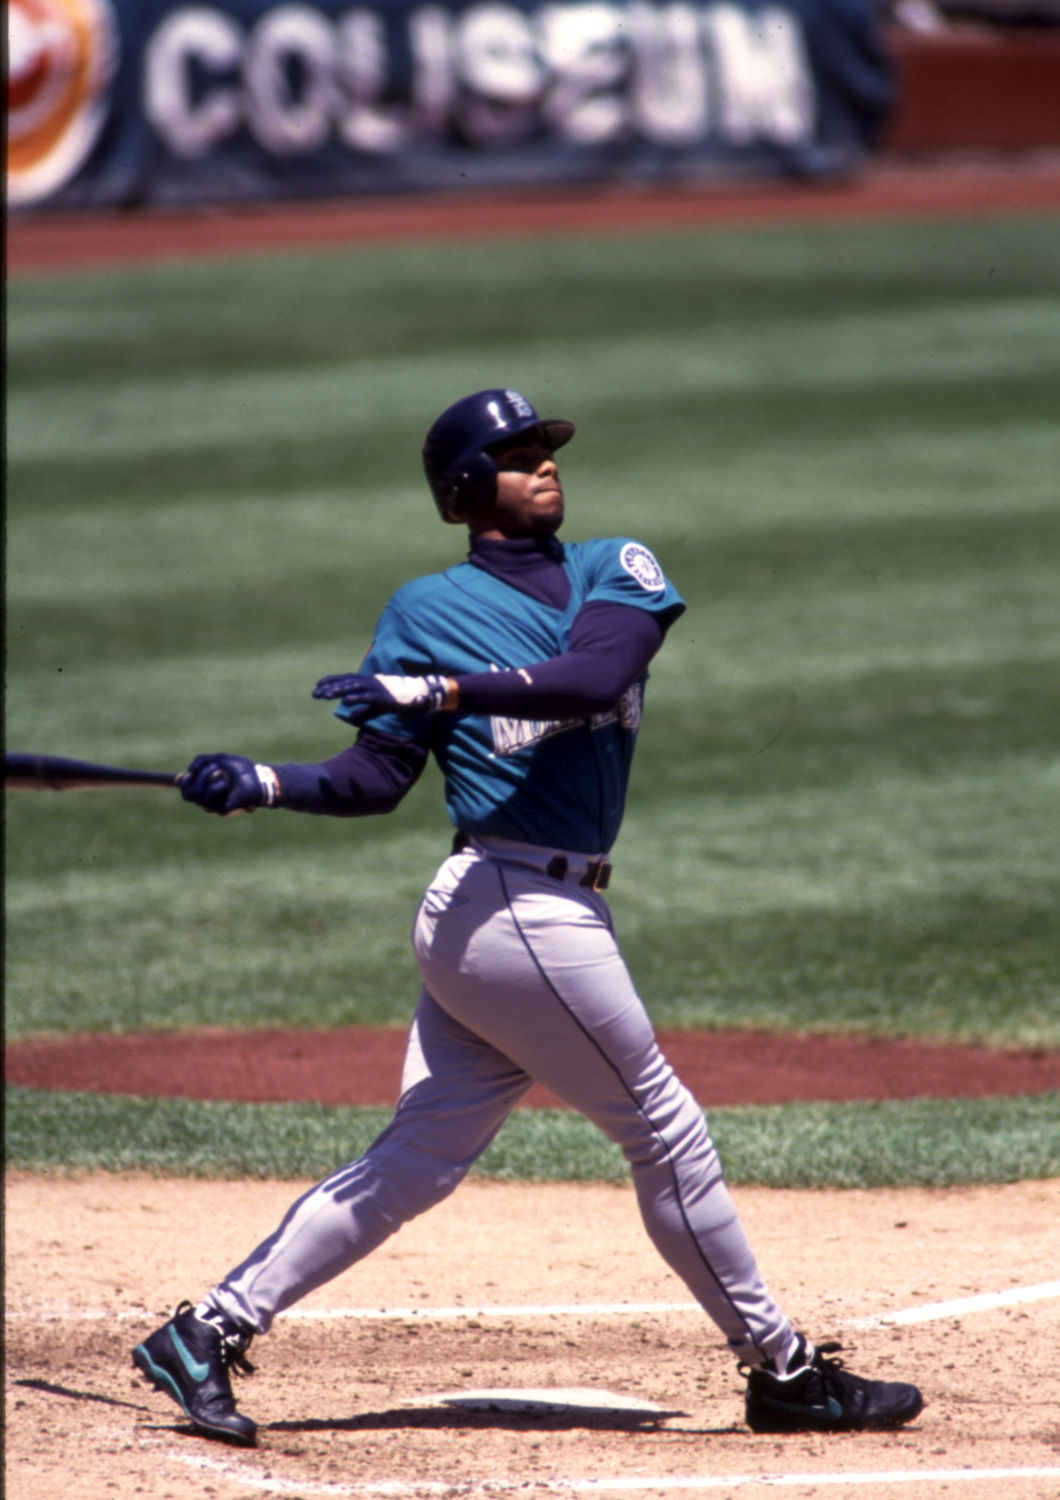 f6603b6e3a Ken Griffey Jr. made his major league debut with the Seattle Mariners in  1989, and played with the team through the 1999 season. He returned at the  very end ...